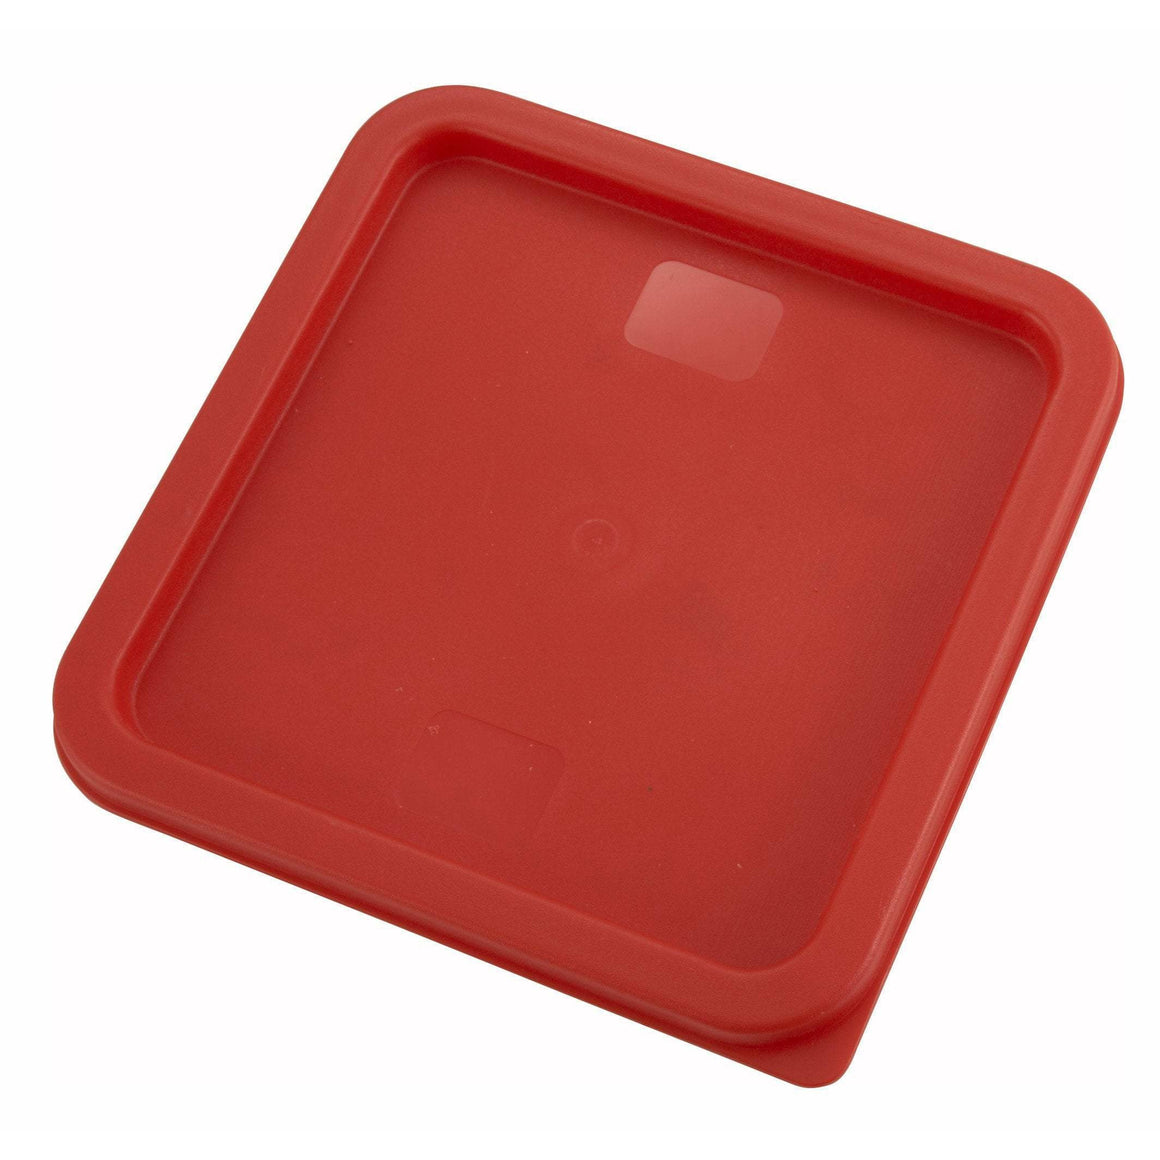 Winco - PECC-68 - Cover for PESC-6/8, PTSC-6/8, PCSC-6/8, Red, PE - Food Storage